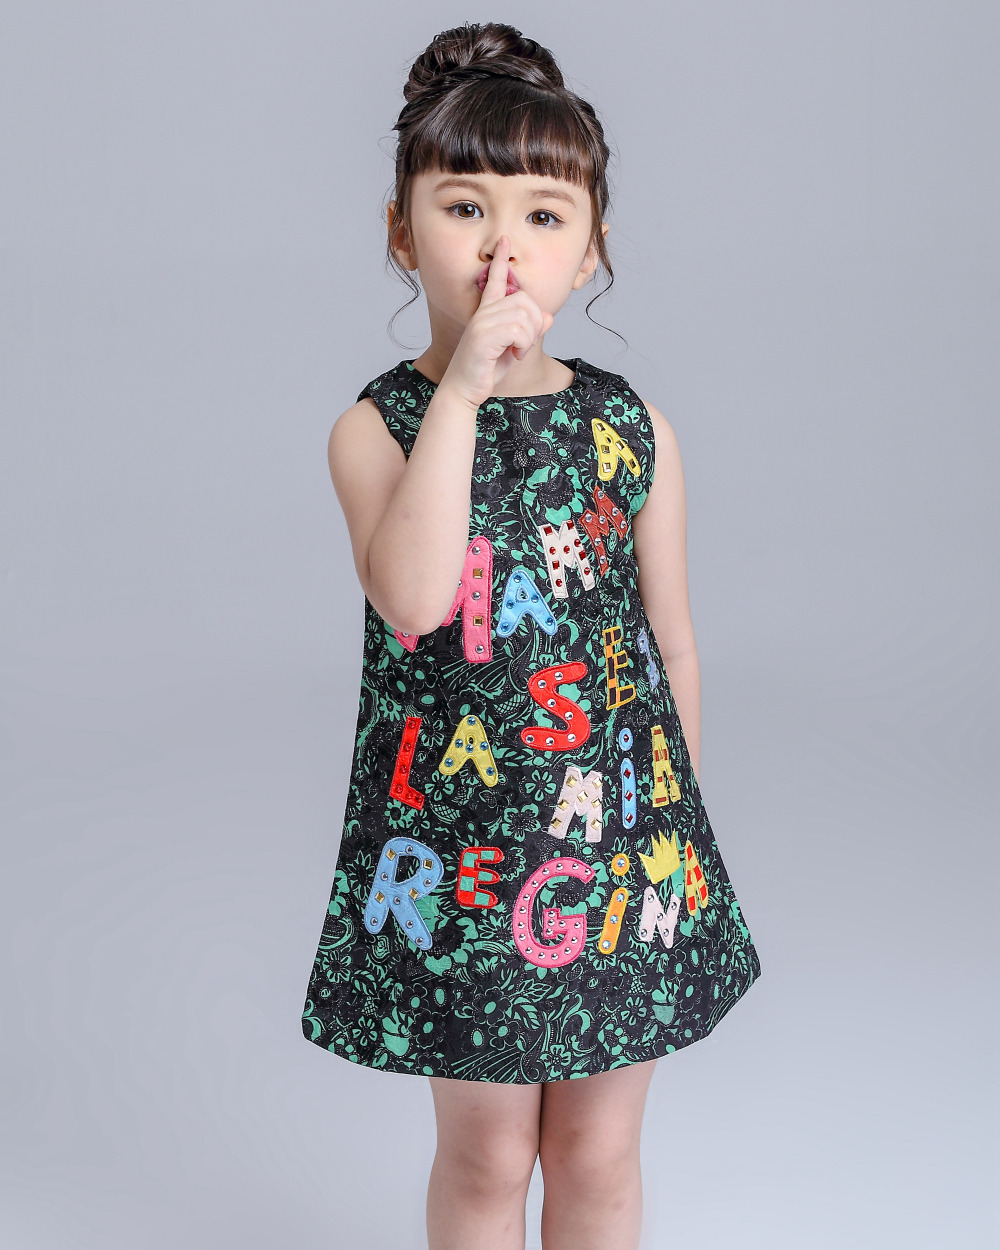 High End Luxury 2015 Autumn Girls Dress Brand Designer Kids Clothes Winter Kids Clothes For Baby Girl Dress Princess Dress 3-10Y new 2016 designer girl autumn